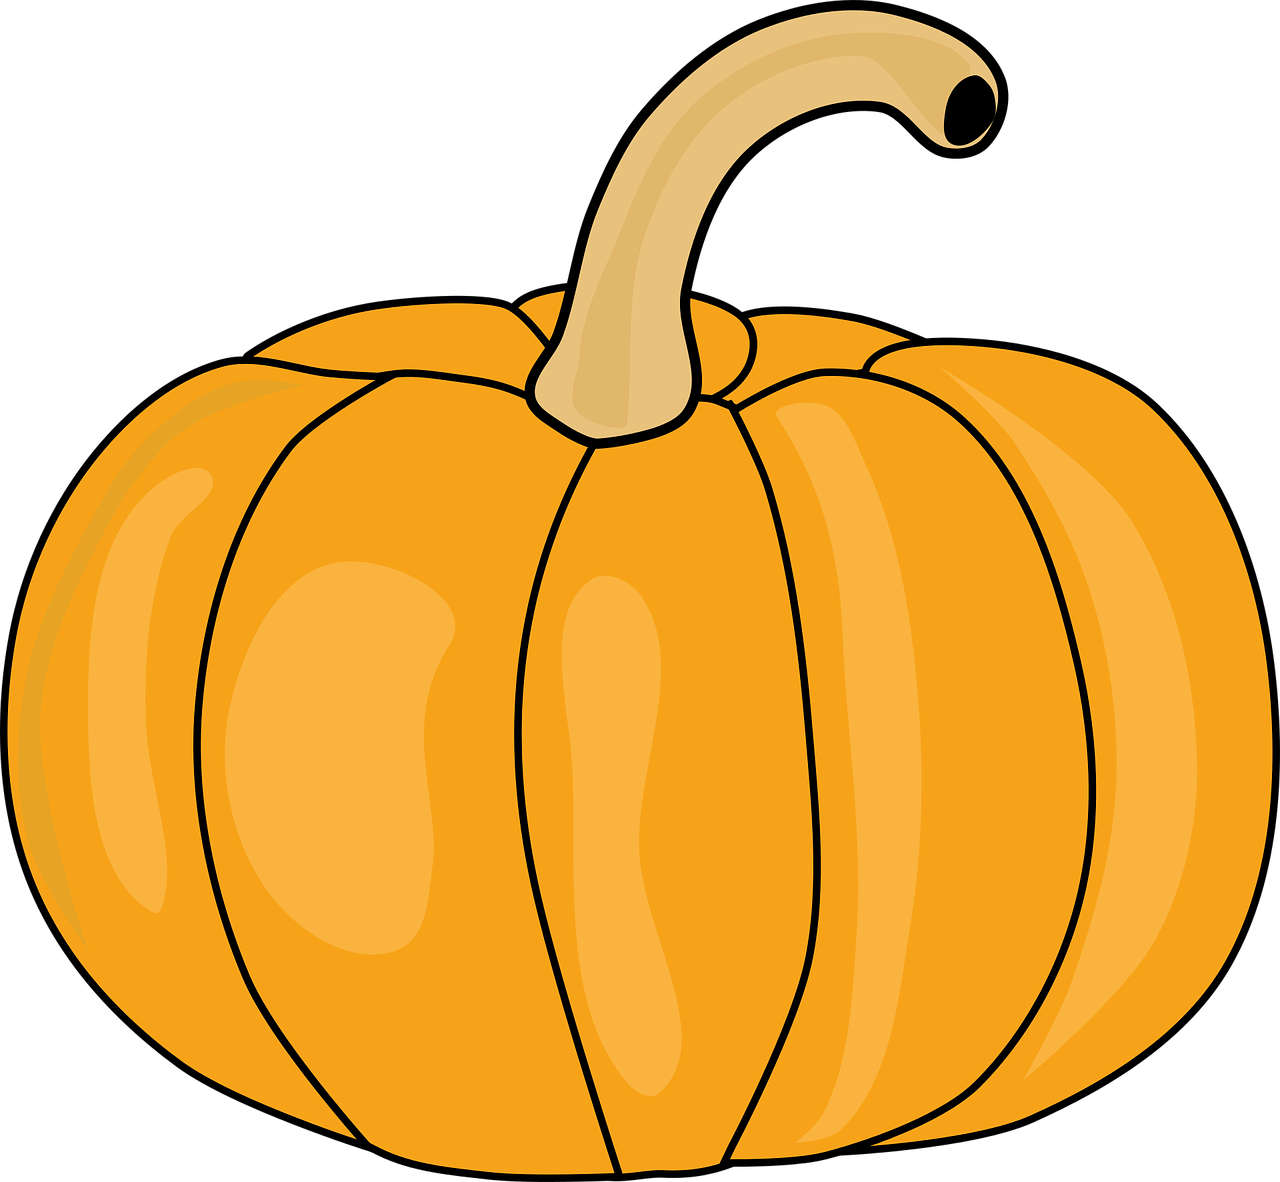 How to draw a pumpkin? HOW TO DRAW in 1 minute